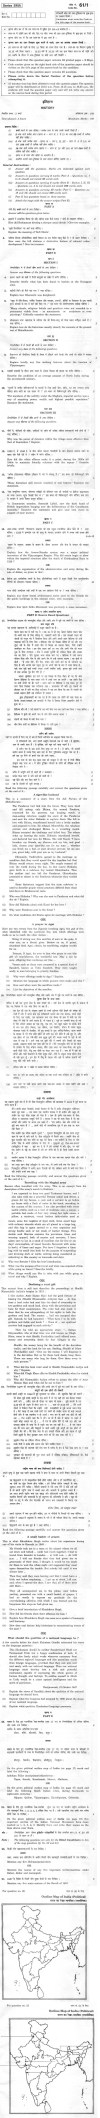 CBSE Class XII Previous Year Question Paper 2012 History